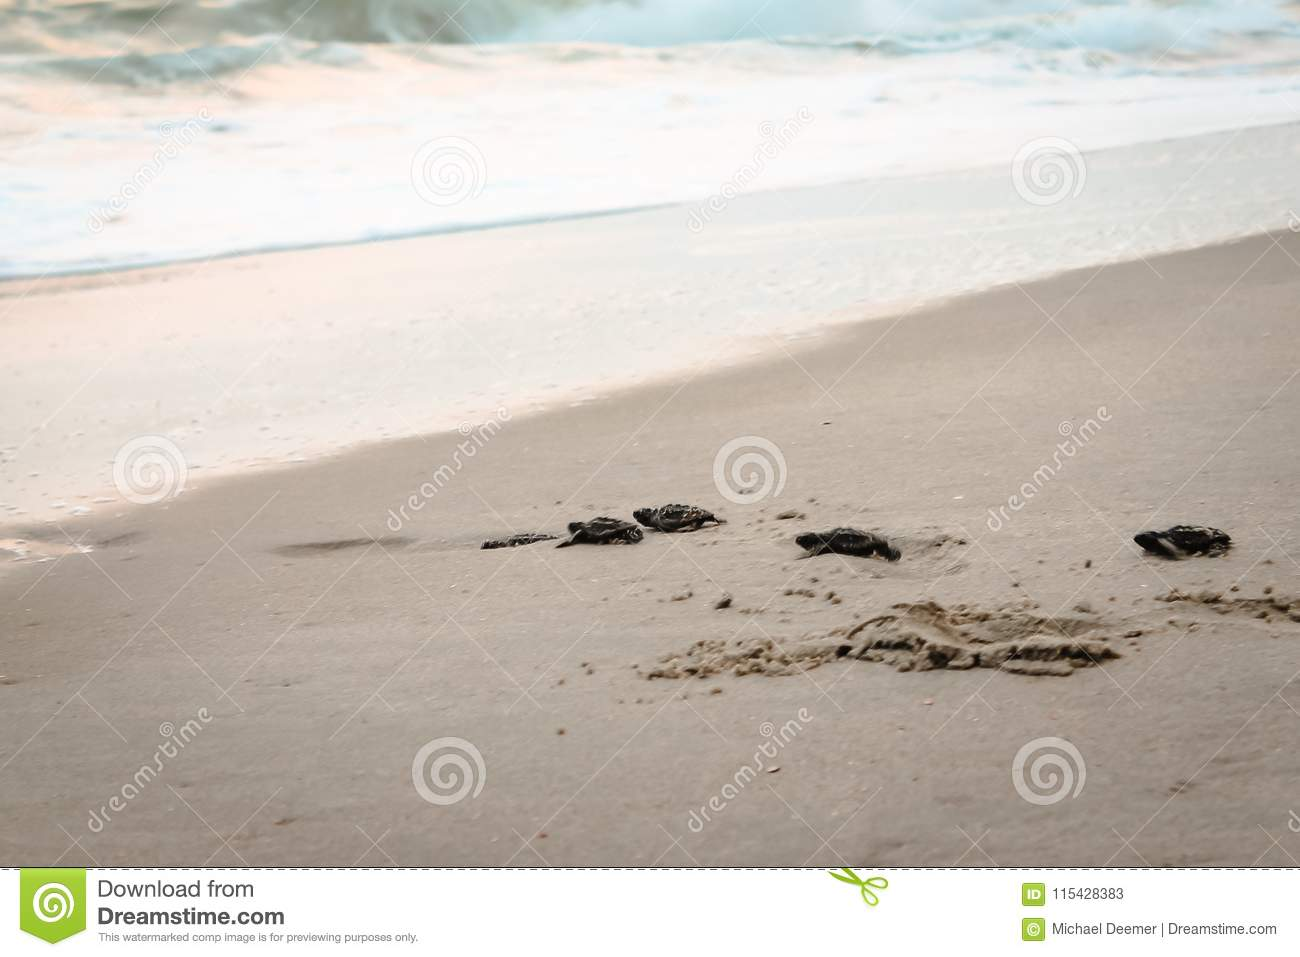 Baby Sea Turtles crawling towards the Atlantic Ocean